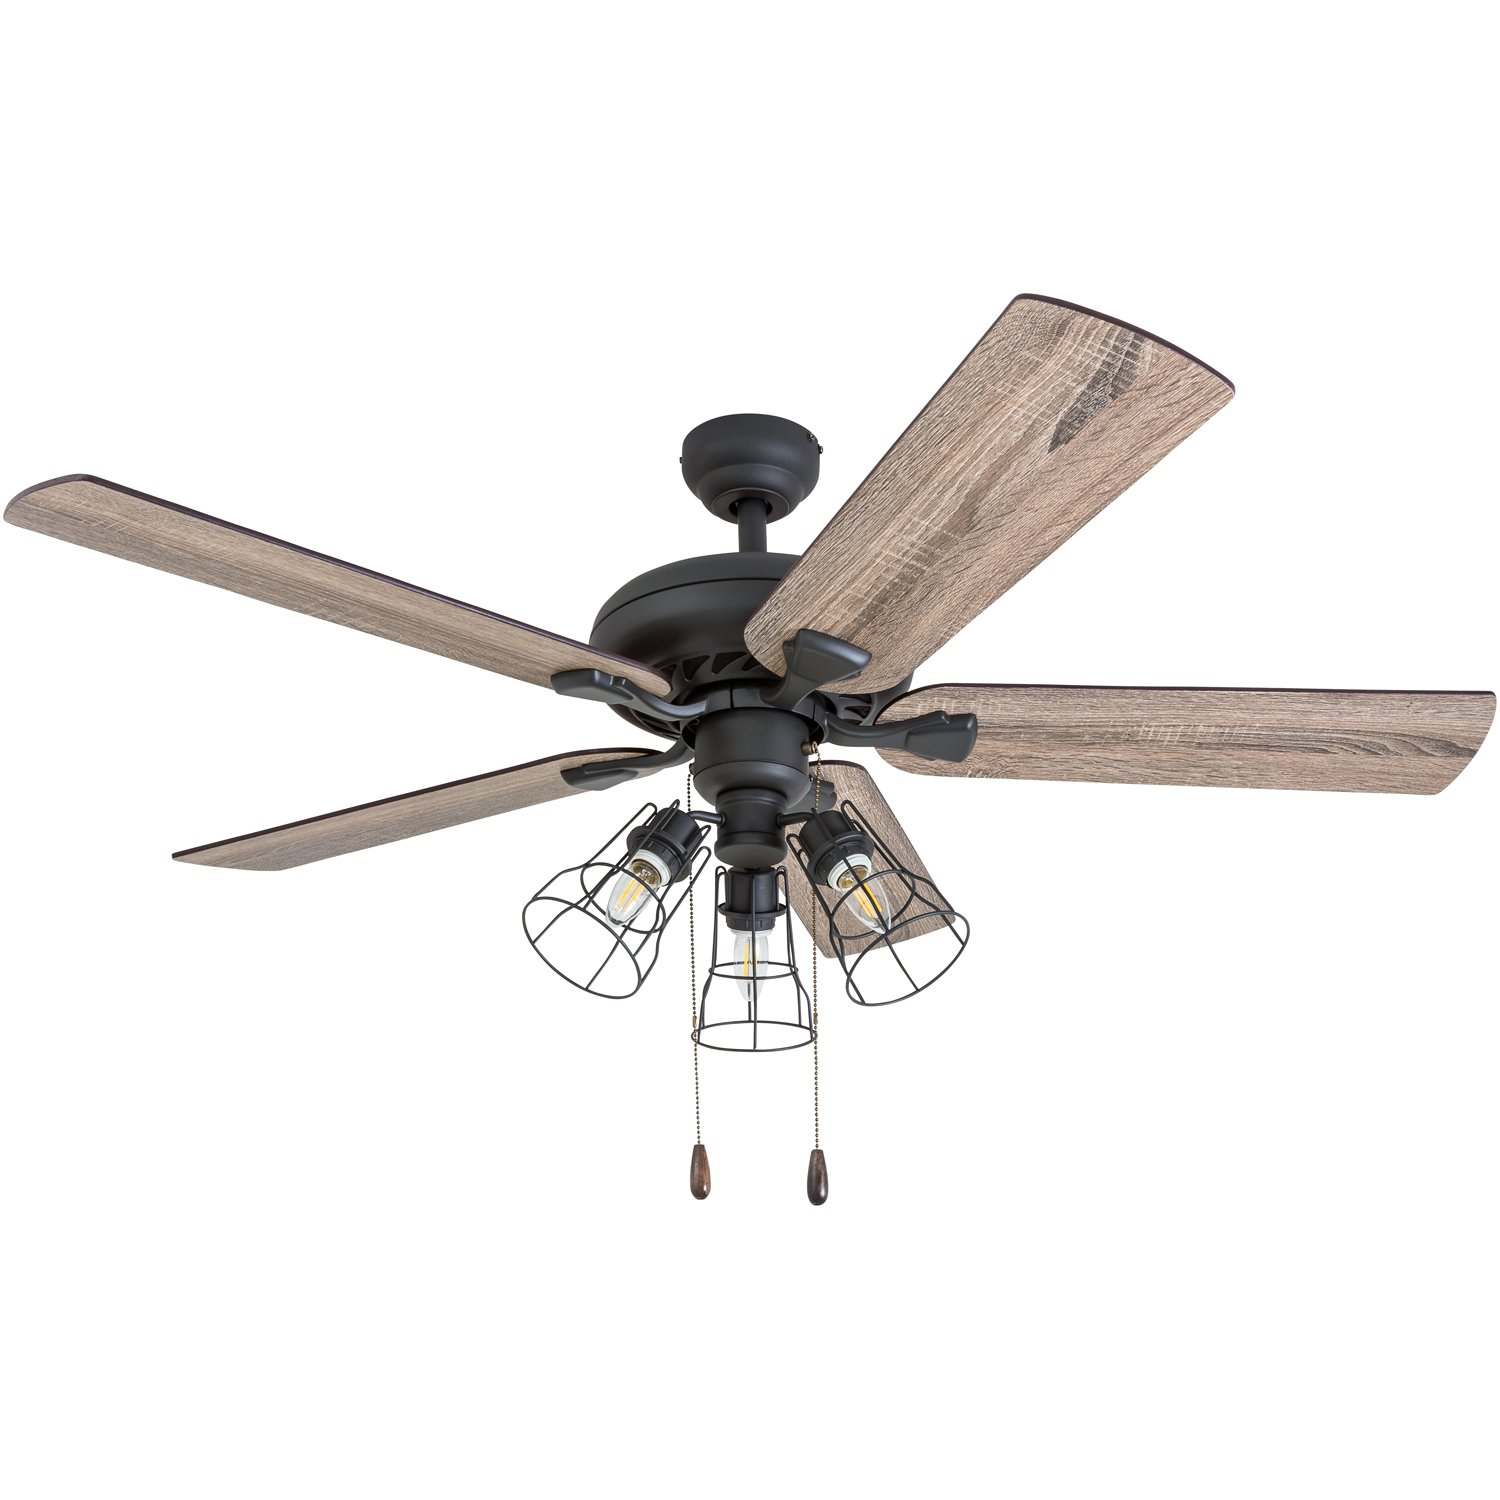 Prominence Home 50745-01 Lincoln Woods Farmhouse Ceiling Fan (3 Speed Remote), 52